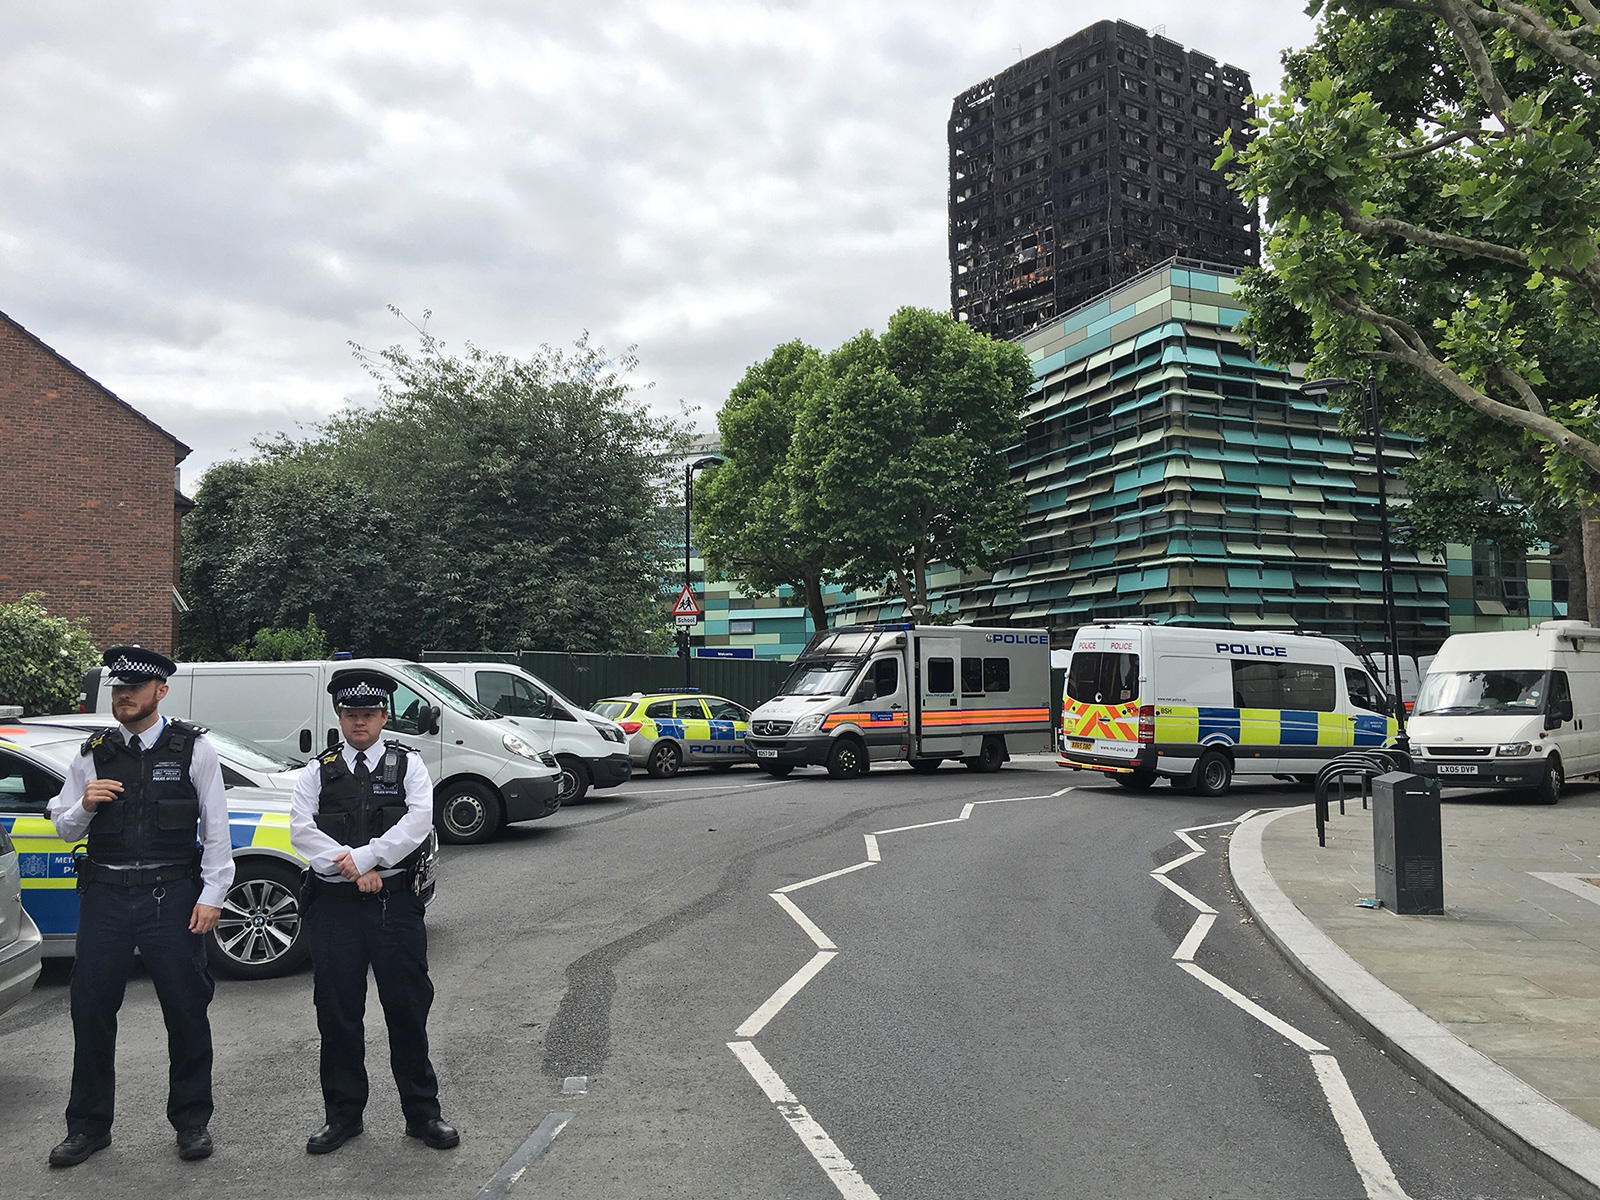 Grenfell Tower   On the 14th of June 2017 a blaze at Grenfell tower took the lives of 71 people. 70 more were injured. The building burned for a total of 60 hours before a total of 250 firefighters were able to control it.